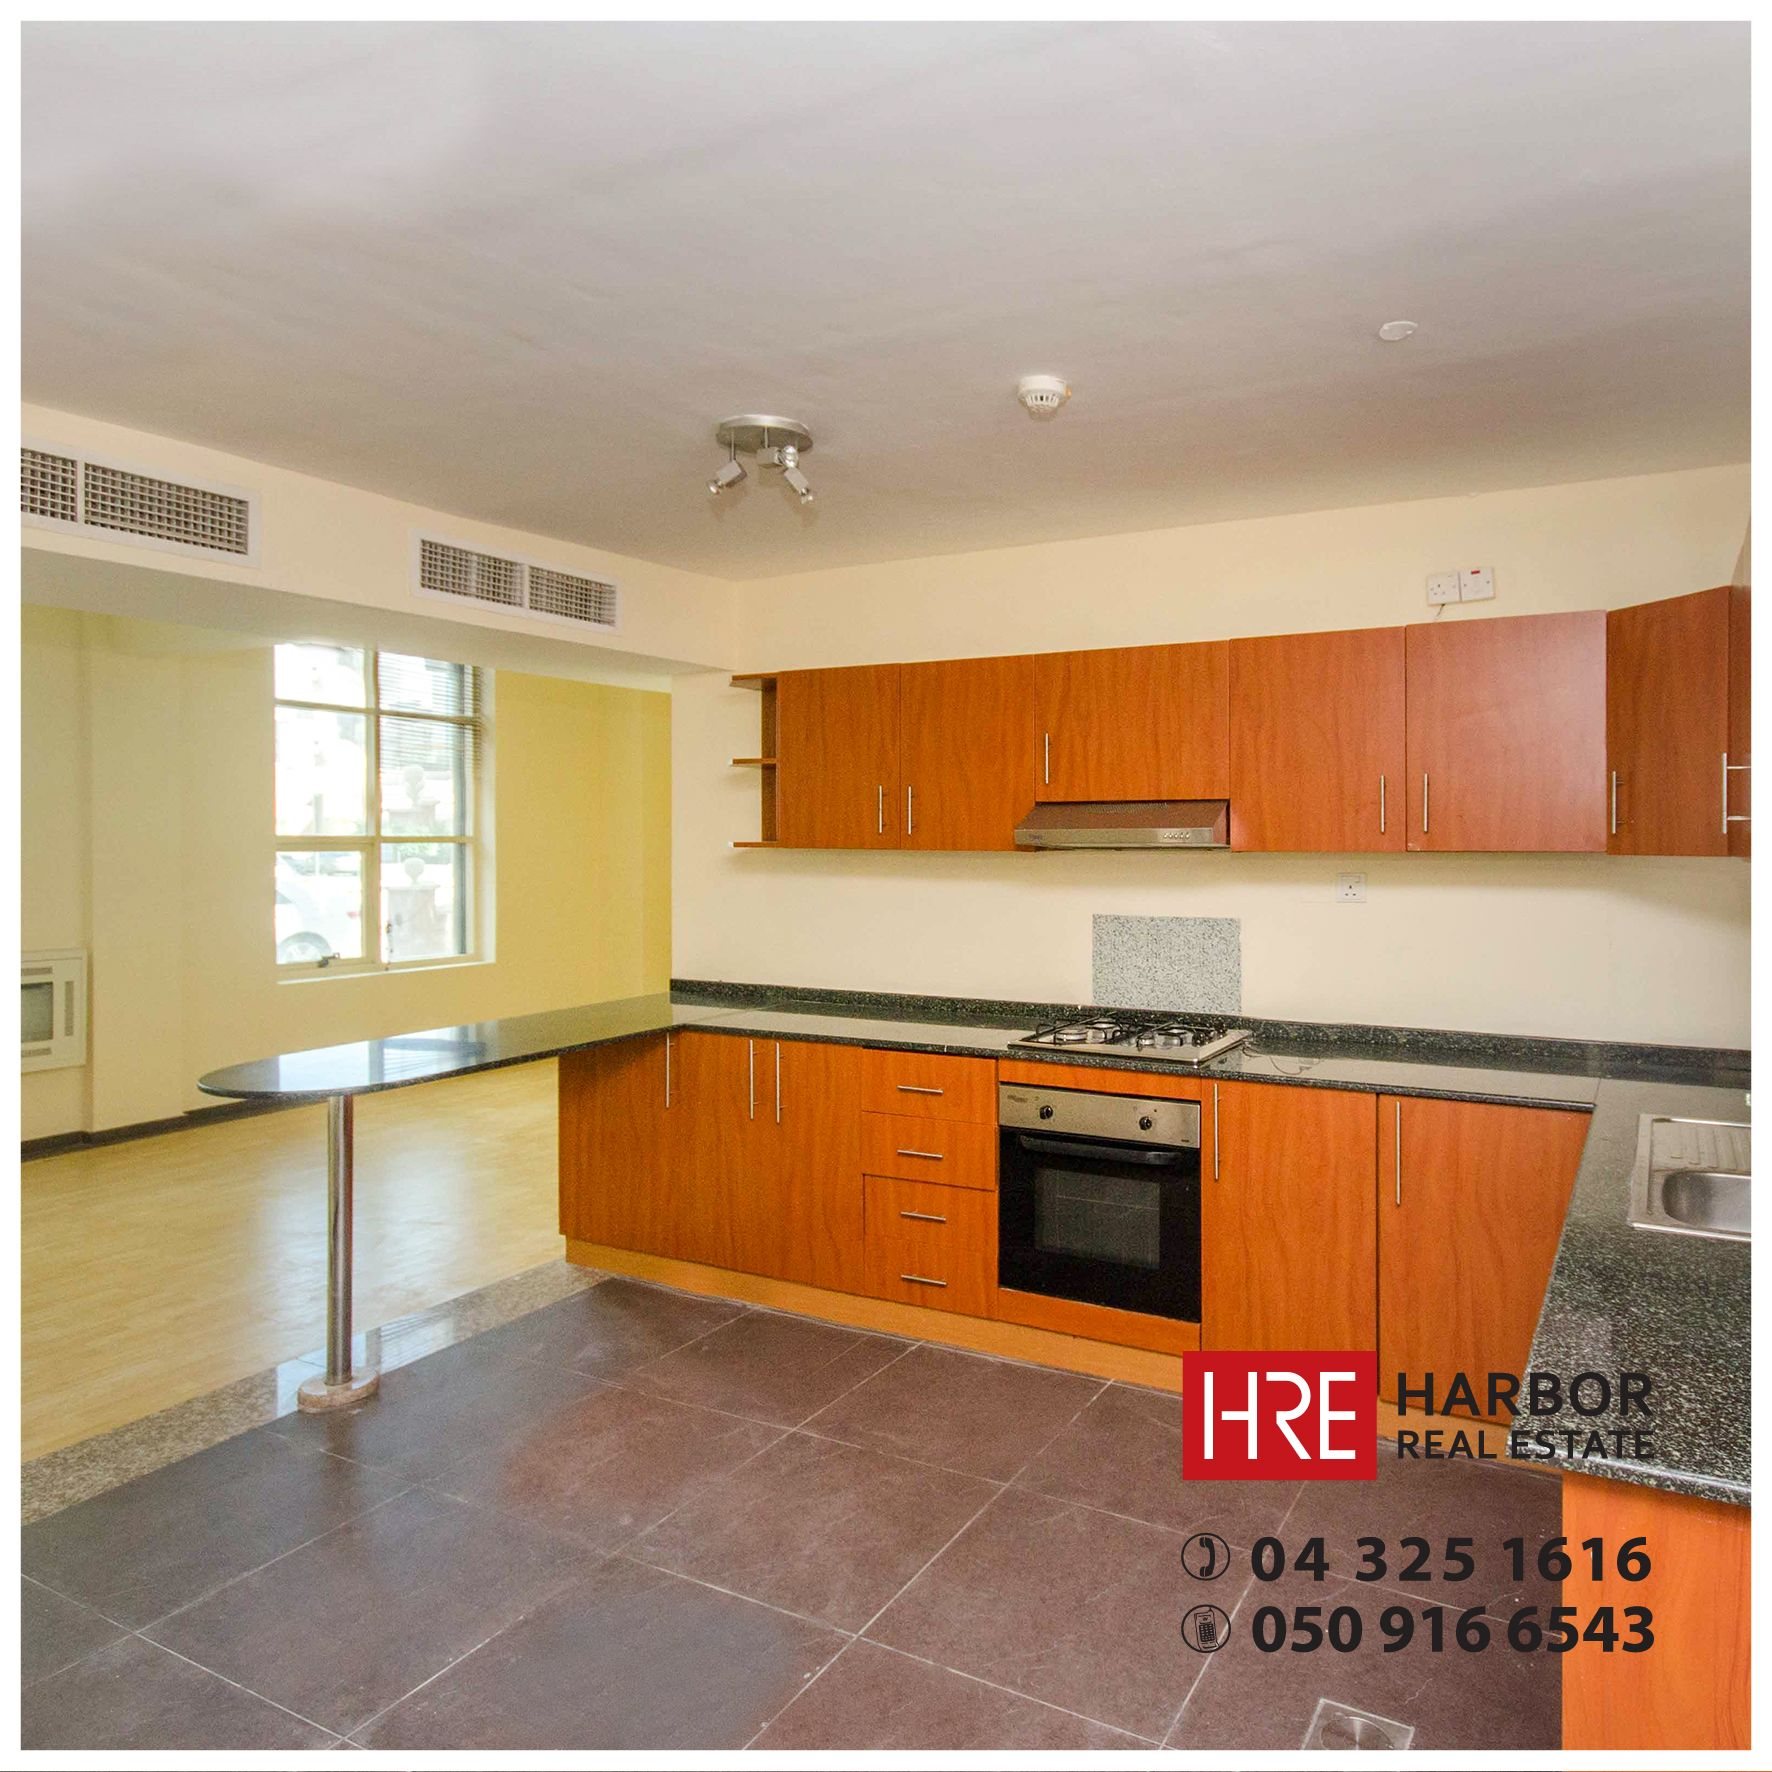 Apartment For Rent With 1 Month Rent Free 12 Cheques Payment In Dubai Silicon Oasis Shared Swimming Pool Nation Apartments For Rent Real Estate New Harbor